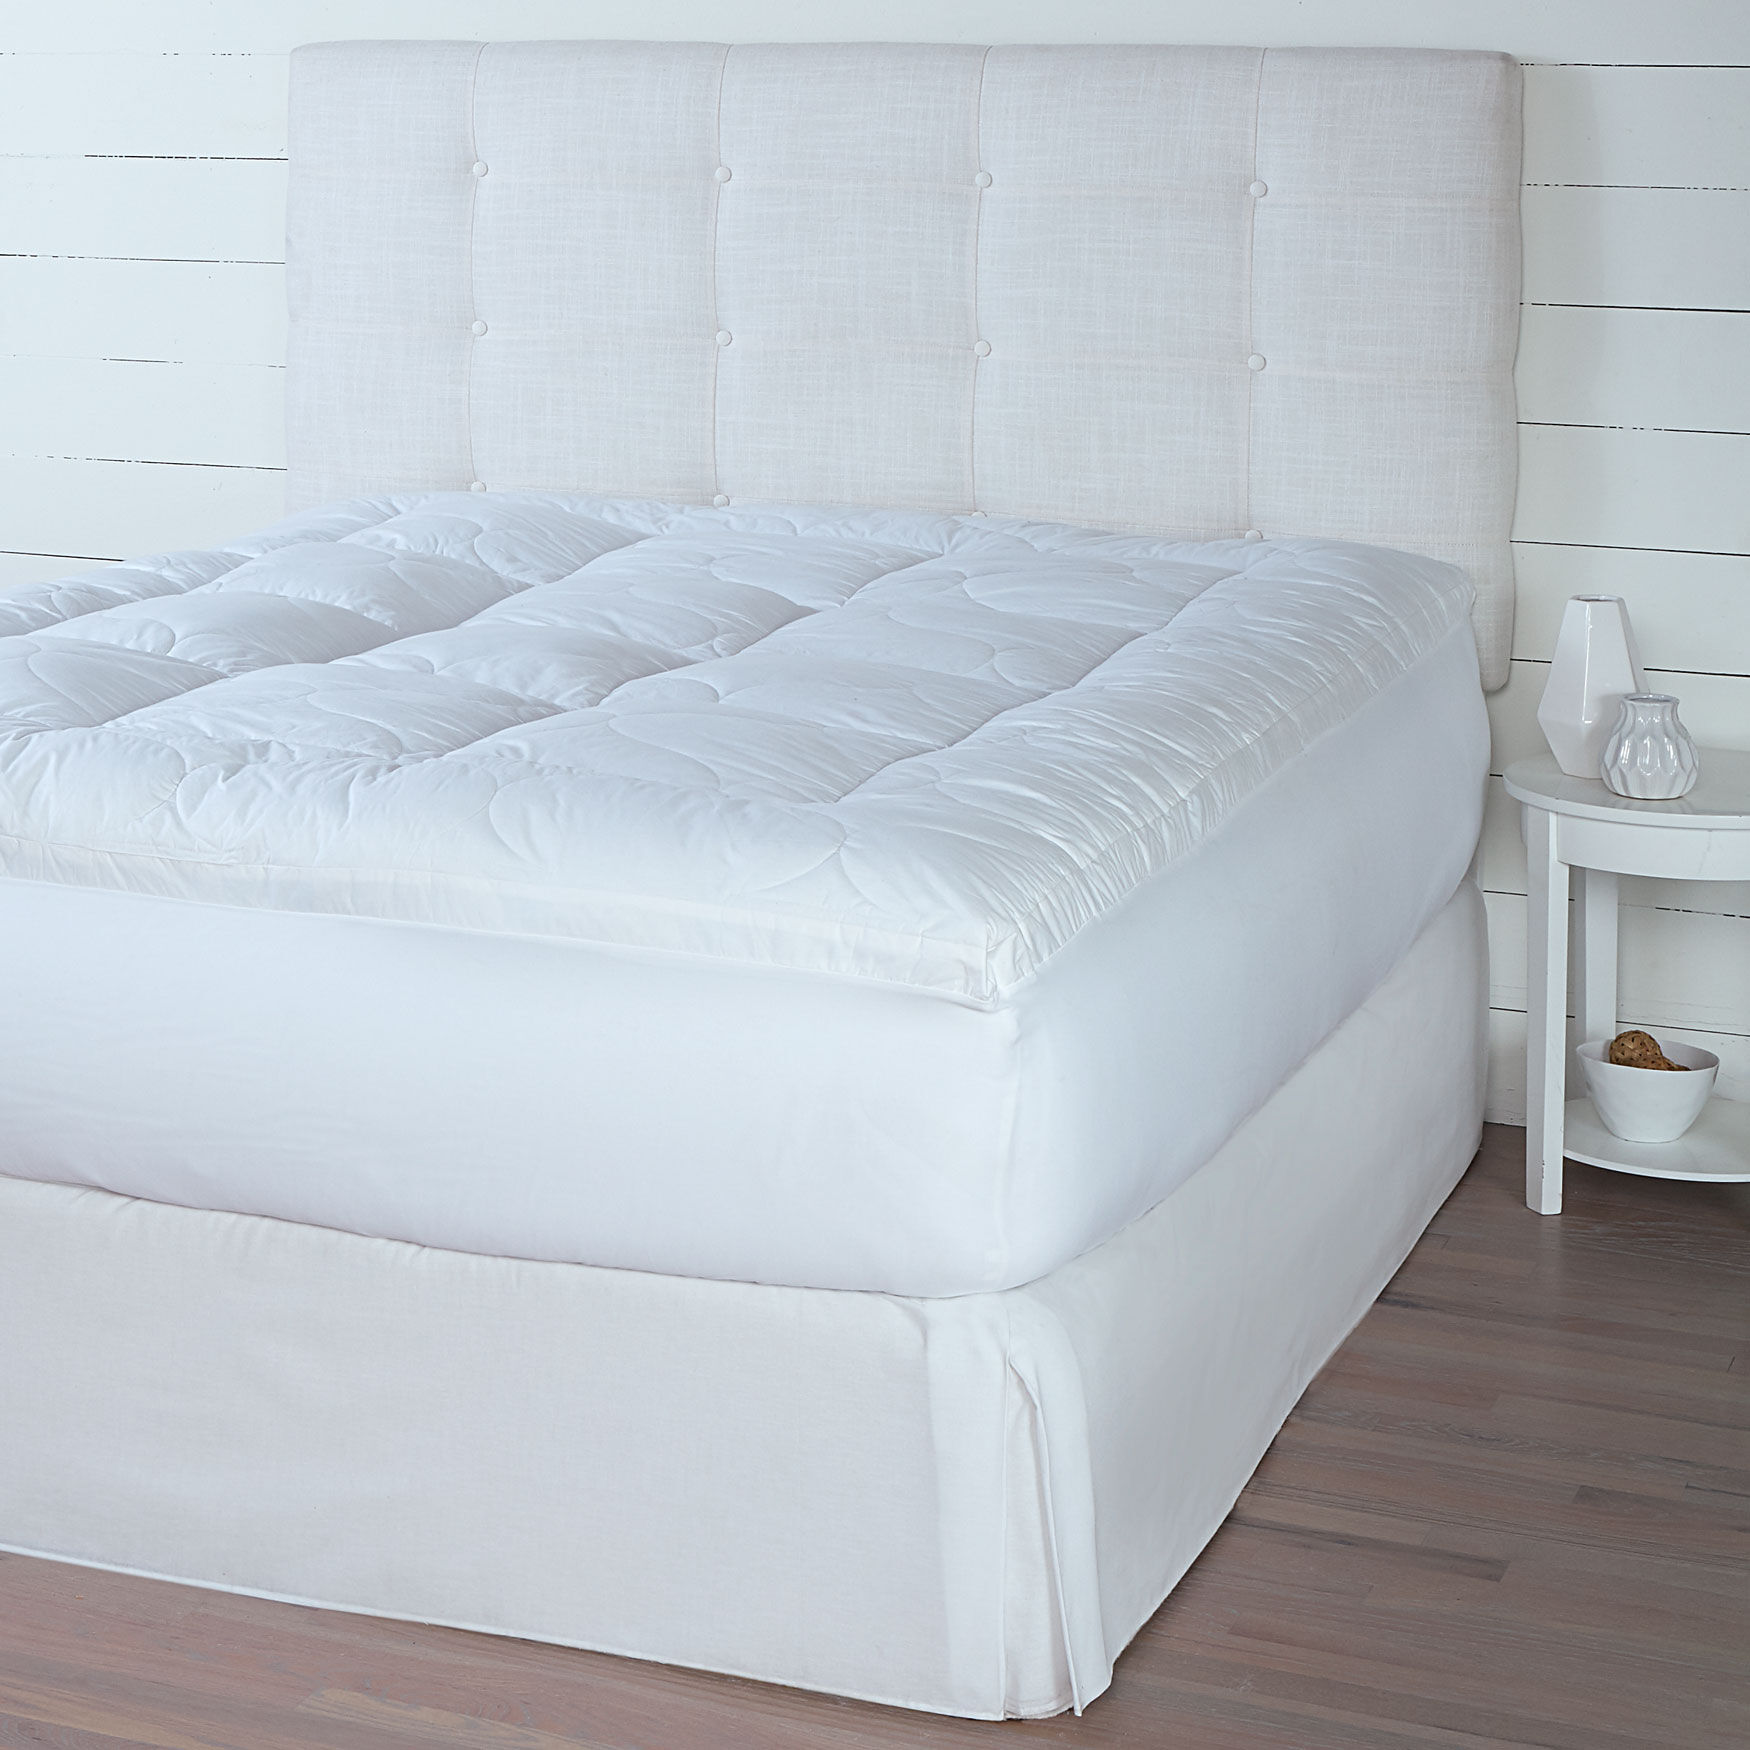 extra support bed topper bedding brylane home rh brylanehome com